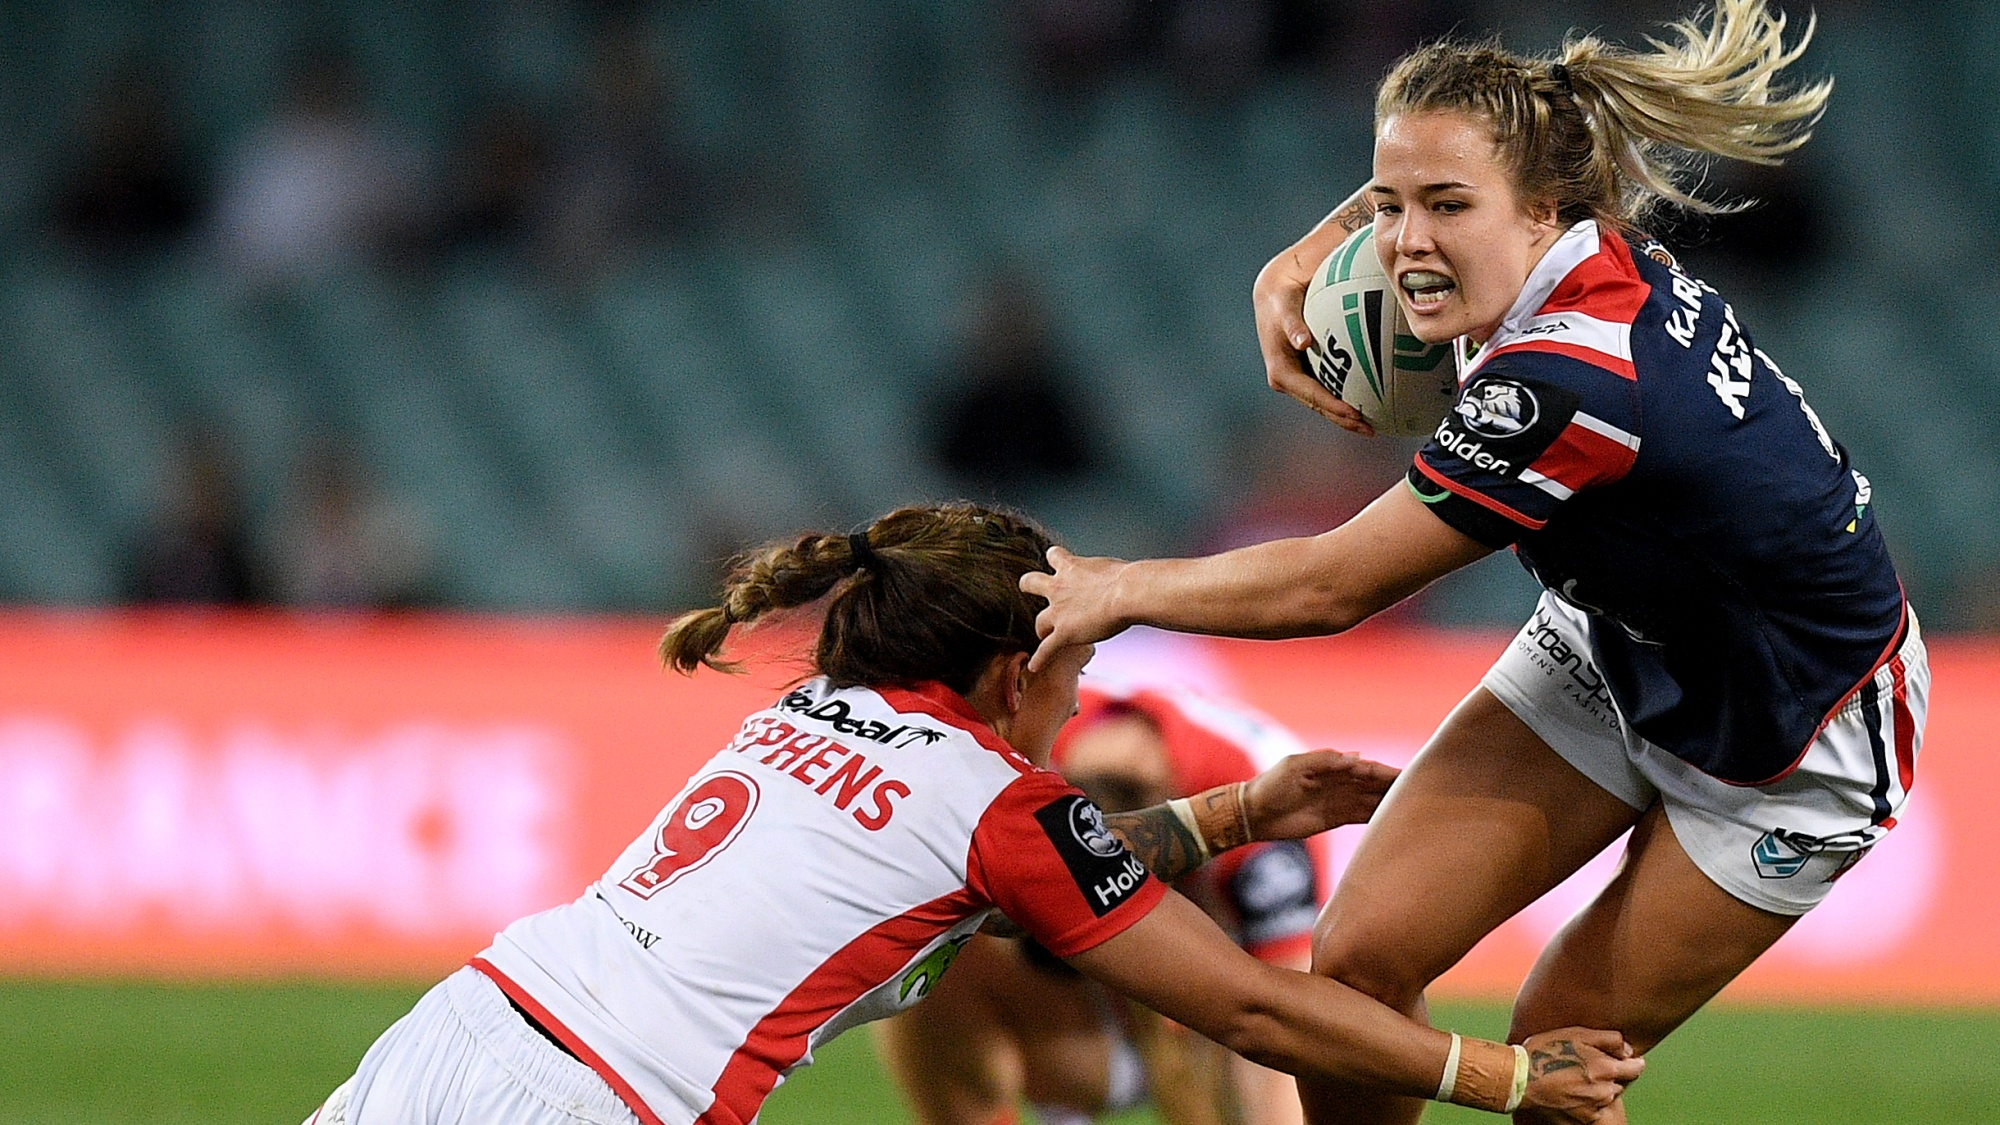 NRLW Highlights: Sydney Roosters v St George Illawarra Dragons - Round 3